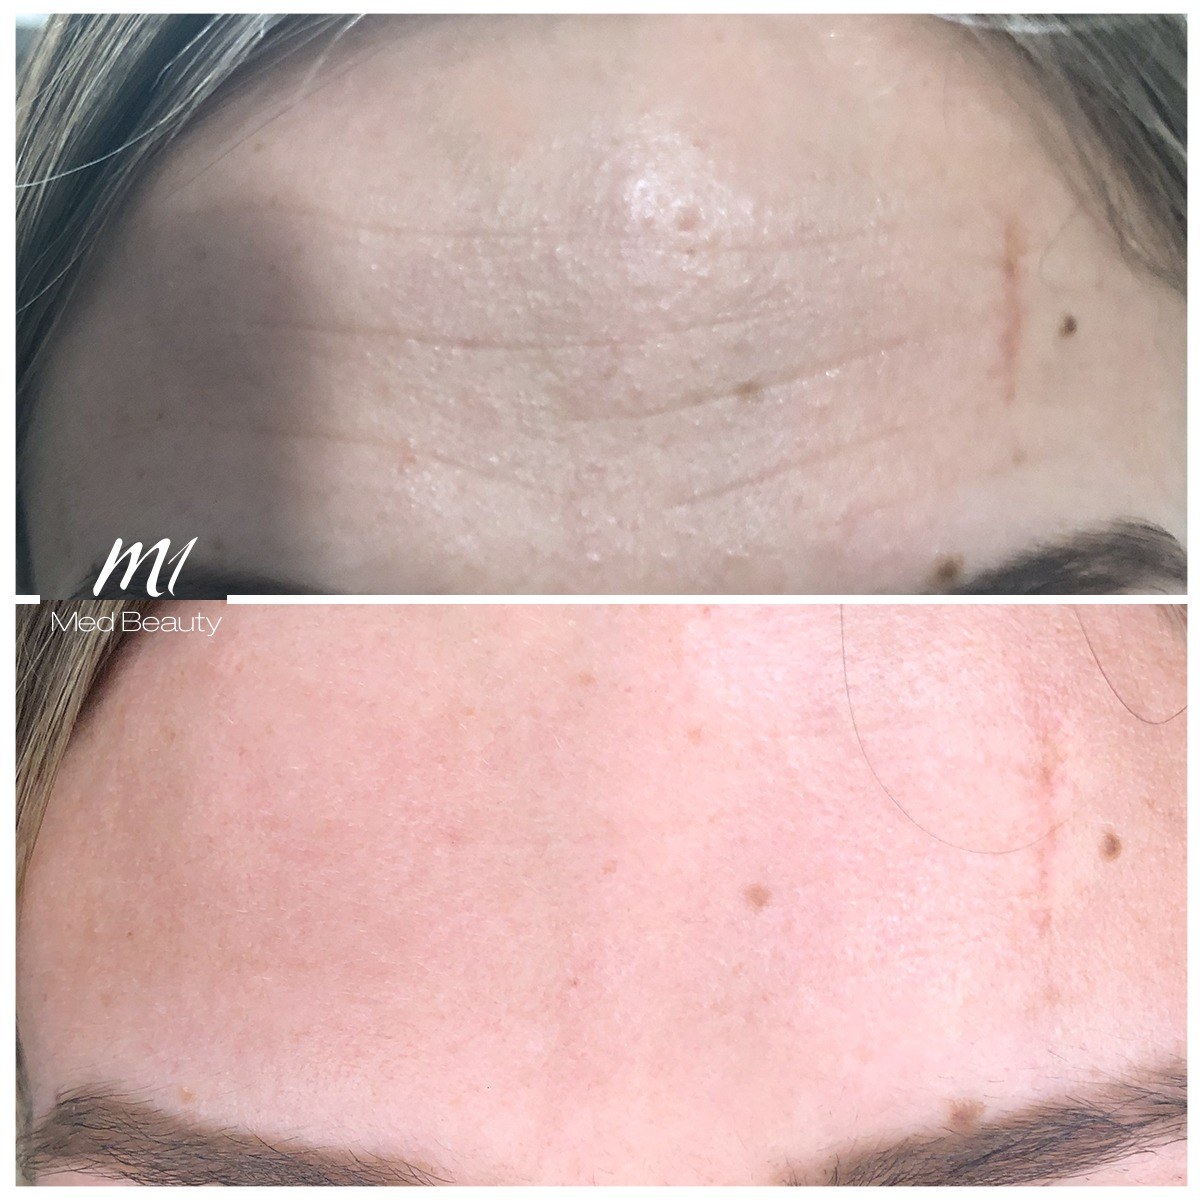 wrinkle treatment of forehead lines with muscle relaxant at M1 Med Beauty